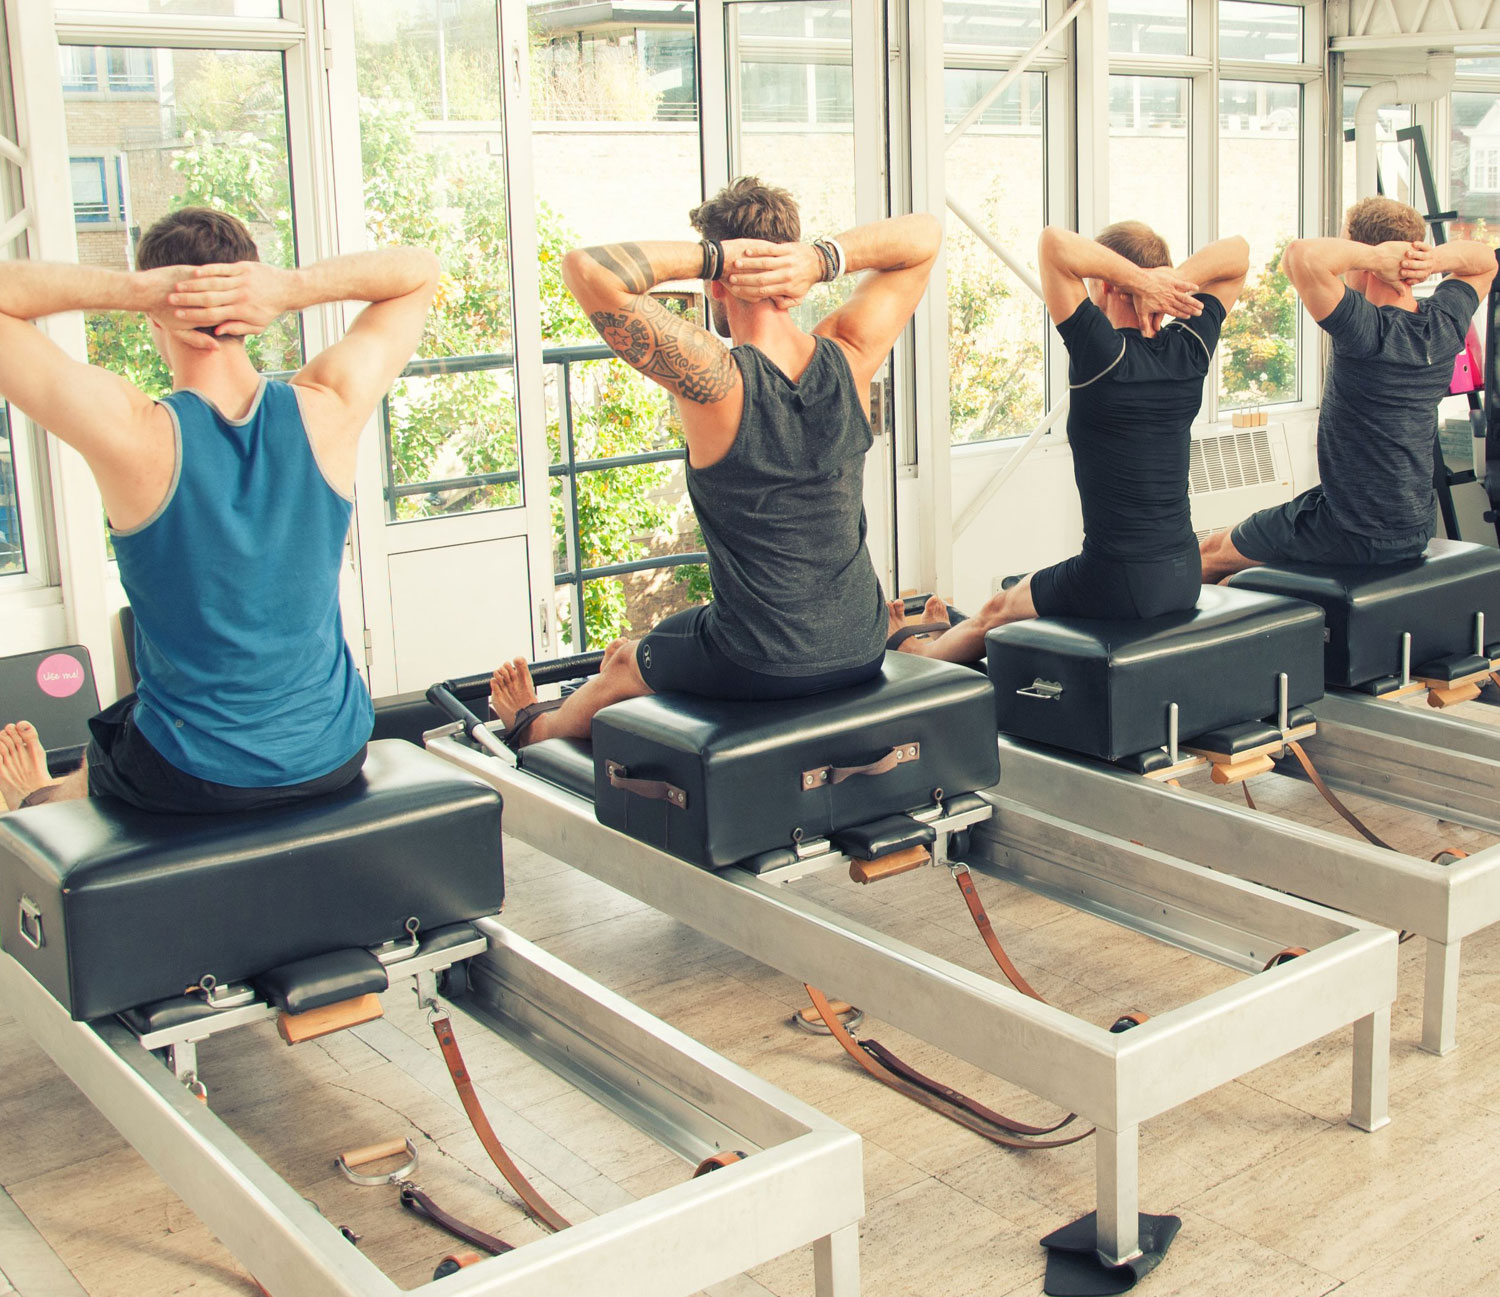 Intro Level Studio Class (from £28) - This Intro level class is your foundation to the full apparatus in a small group setting. Get one on one hands on time with your favourite teacher. A Studio Class is the Pilates workout that blends group training with private sessions so you can maximise your time and results.